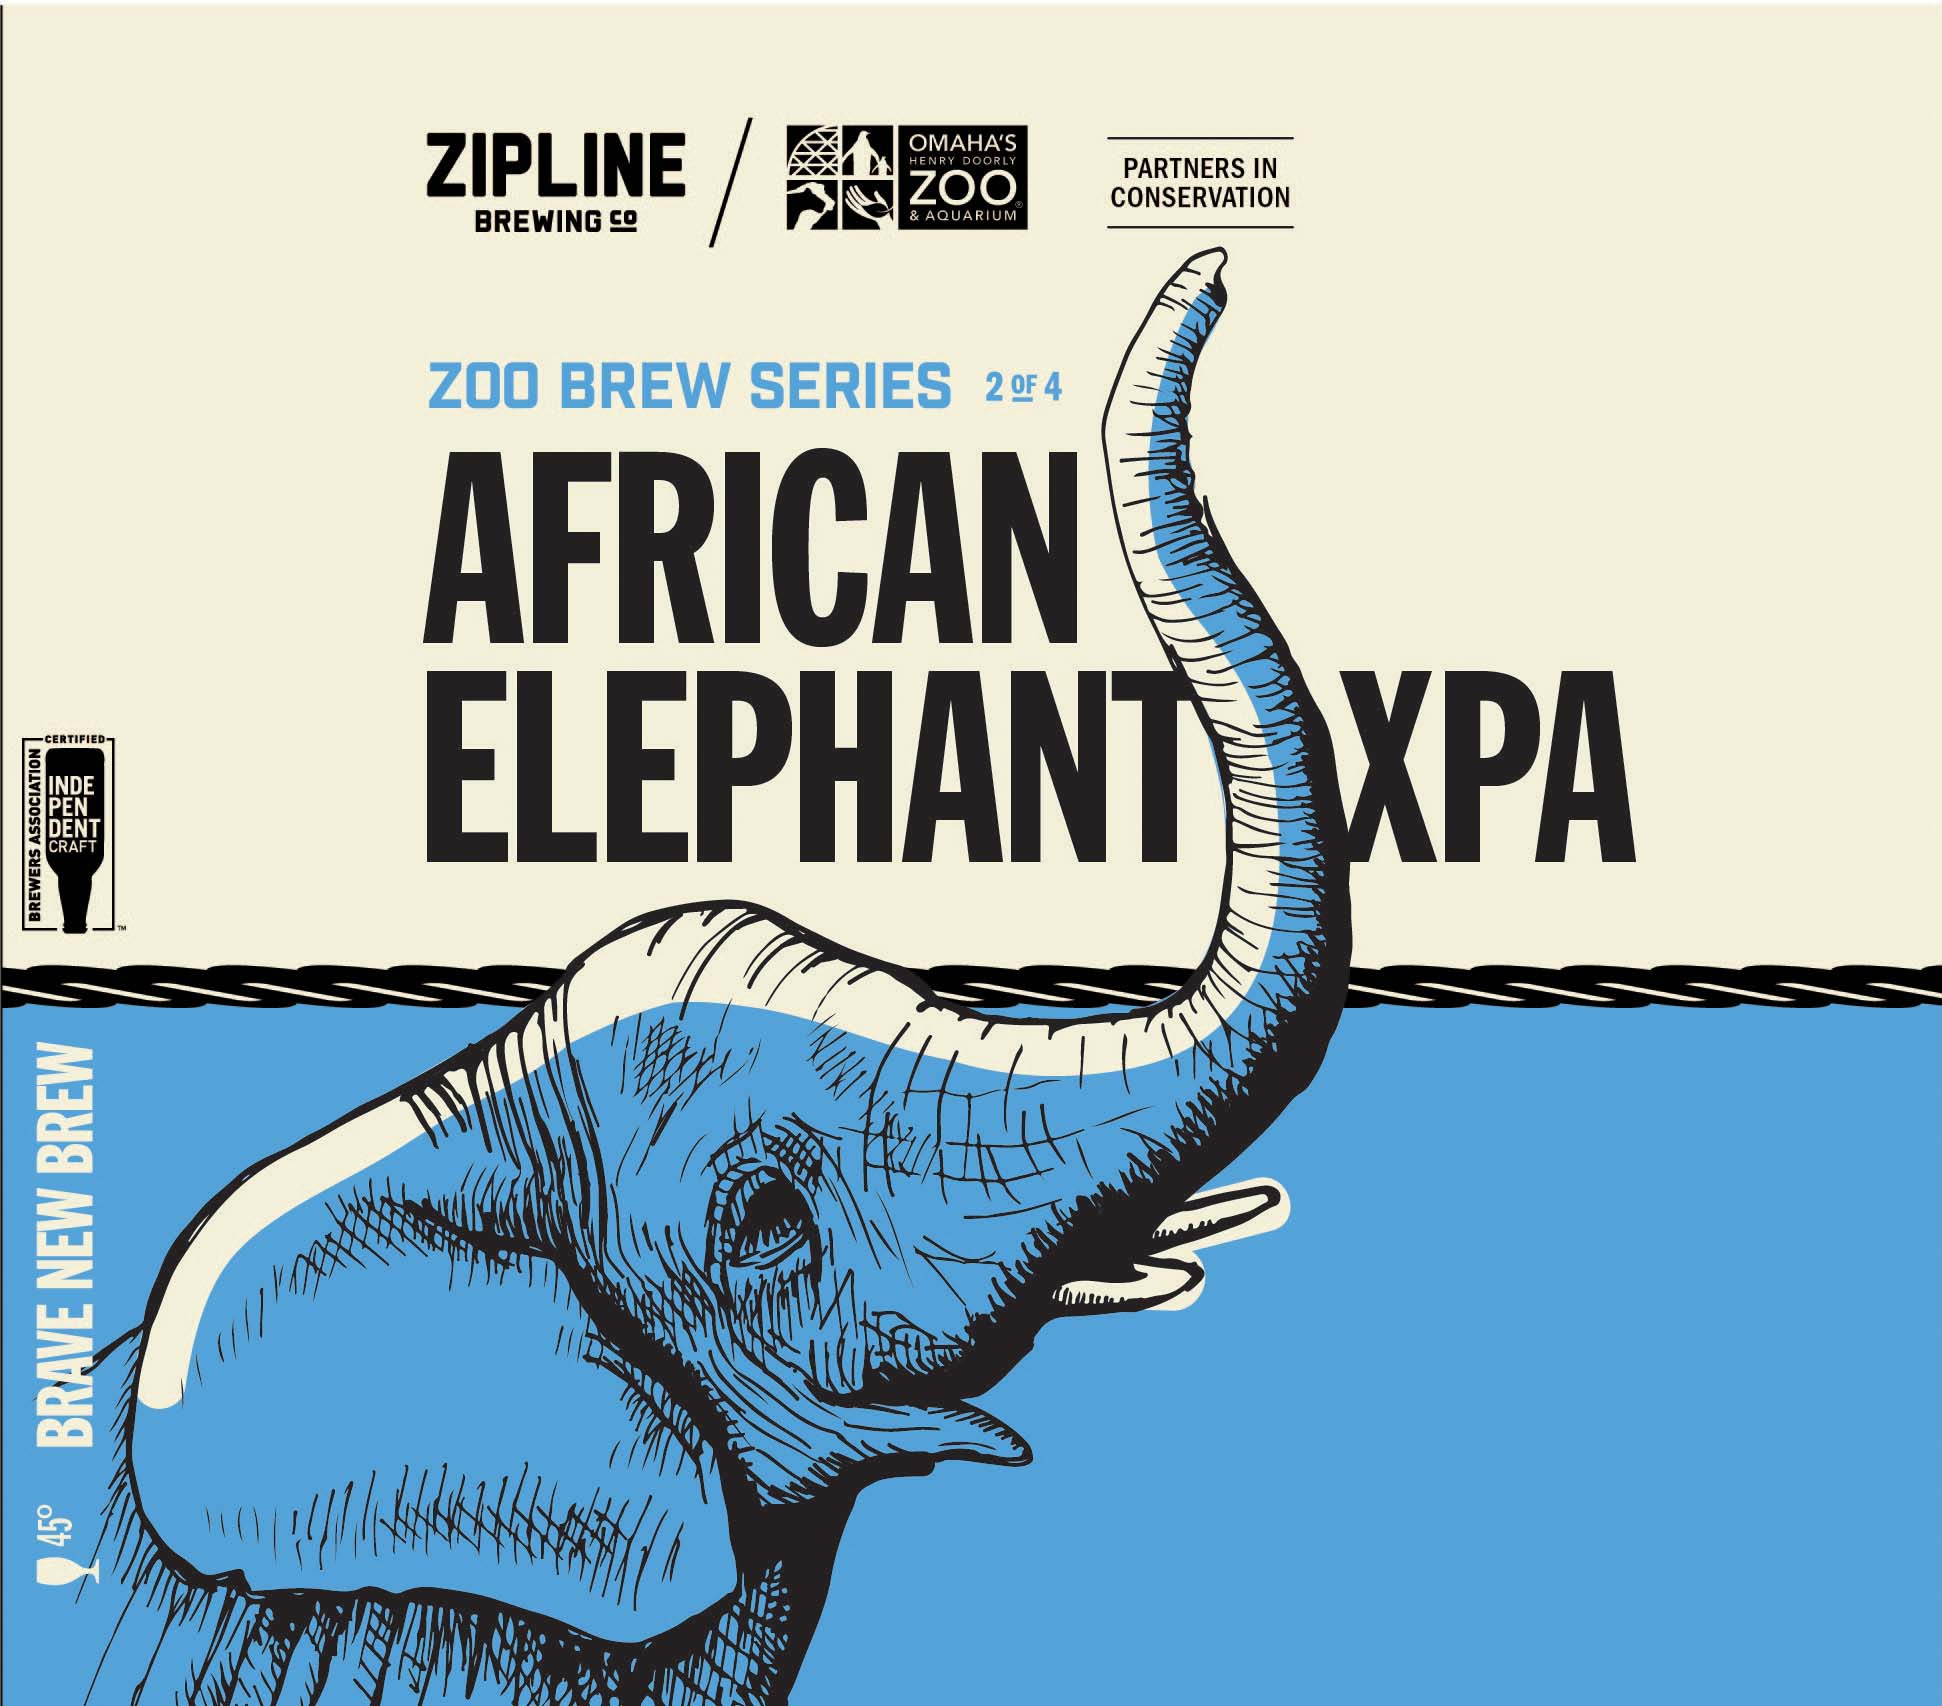 Zoo Brew Series Launches with Four Limited-Edition Flavors